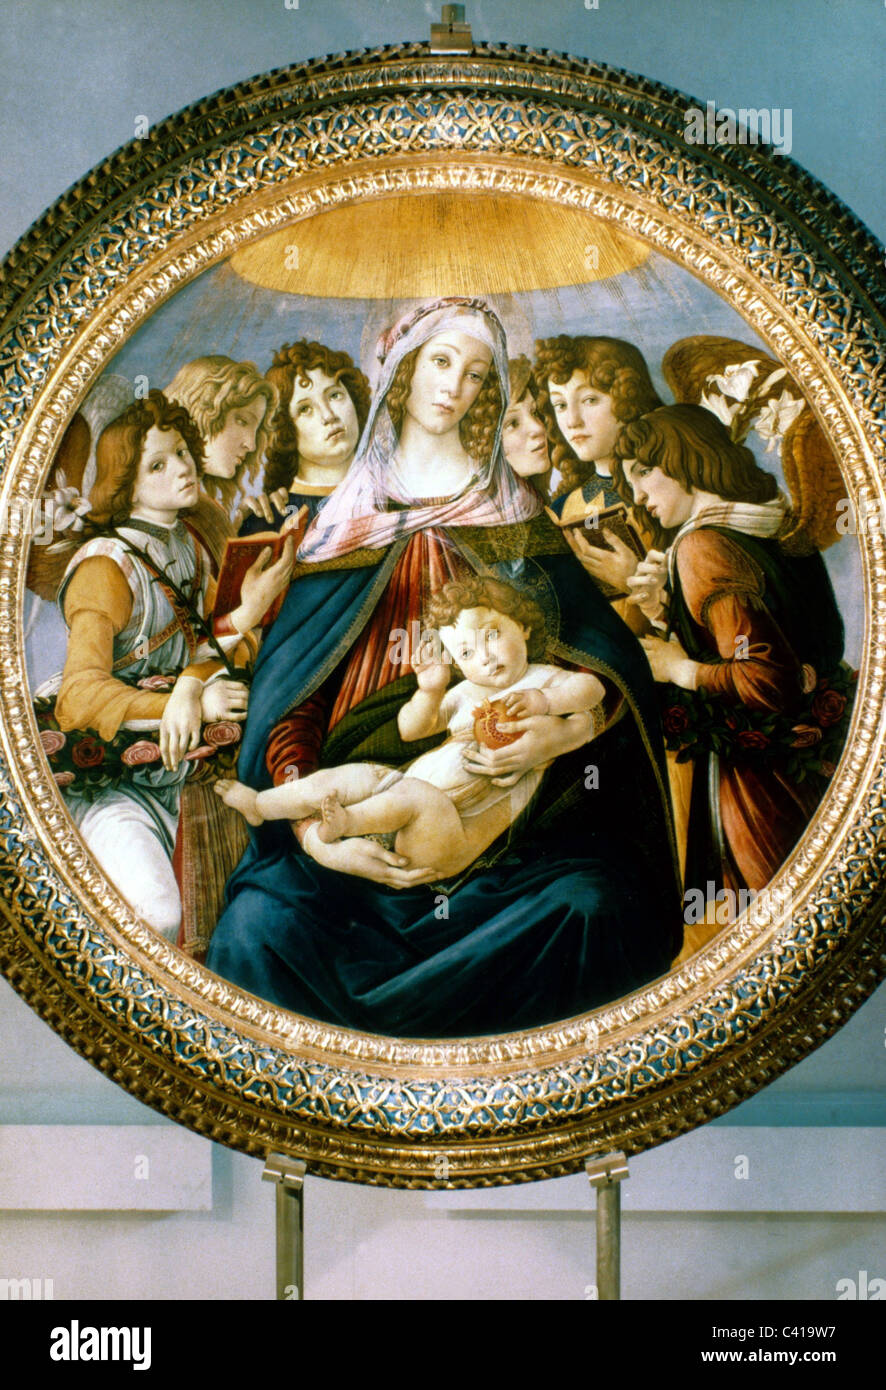 fine arts, Botticelli, Sandro (1445 - 1510), painting, 'Madonna of the Pomegranate' (Madonna with Child - Stock Image